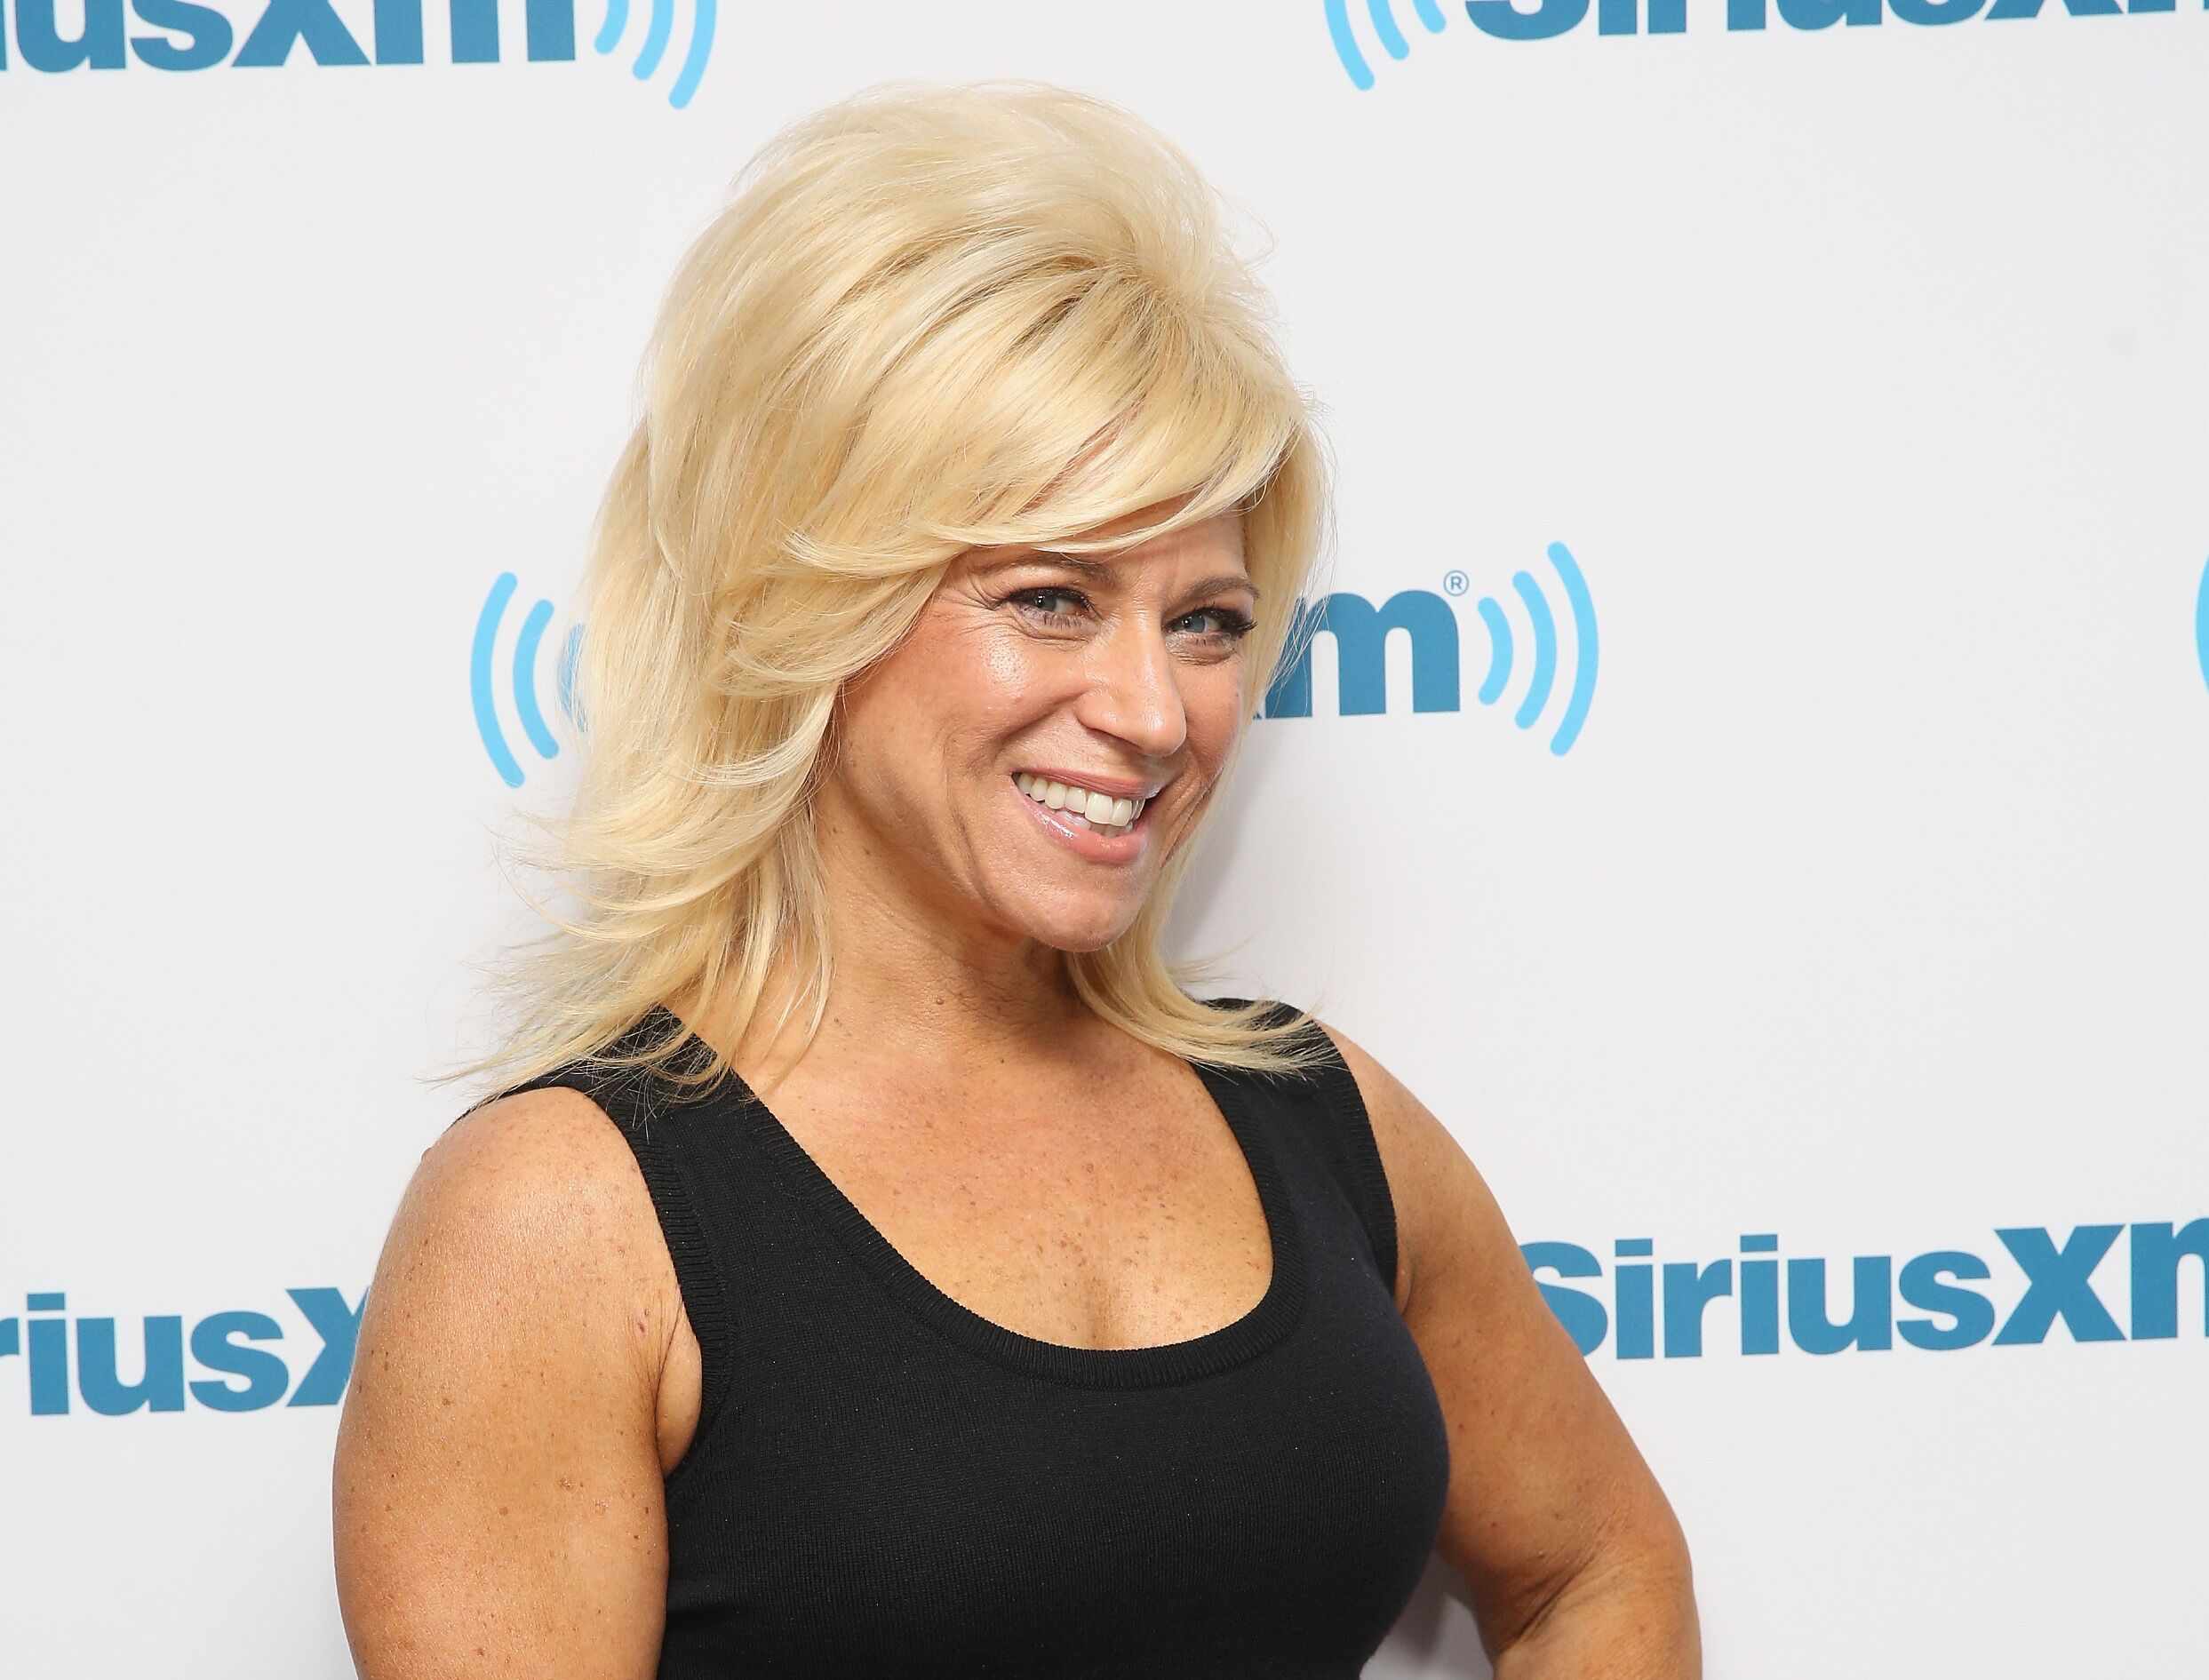 Theresa Caputo visits at SiriusXM Studios on December 15, 2015 in New York City | Photo: Getty Images